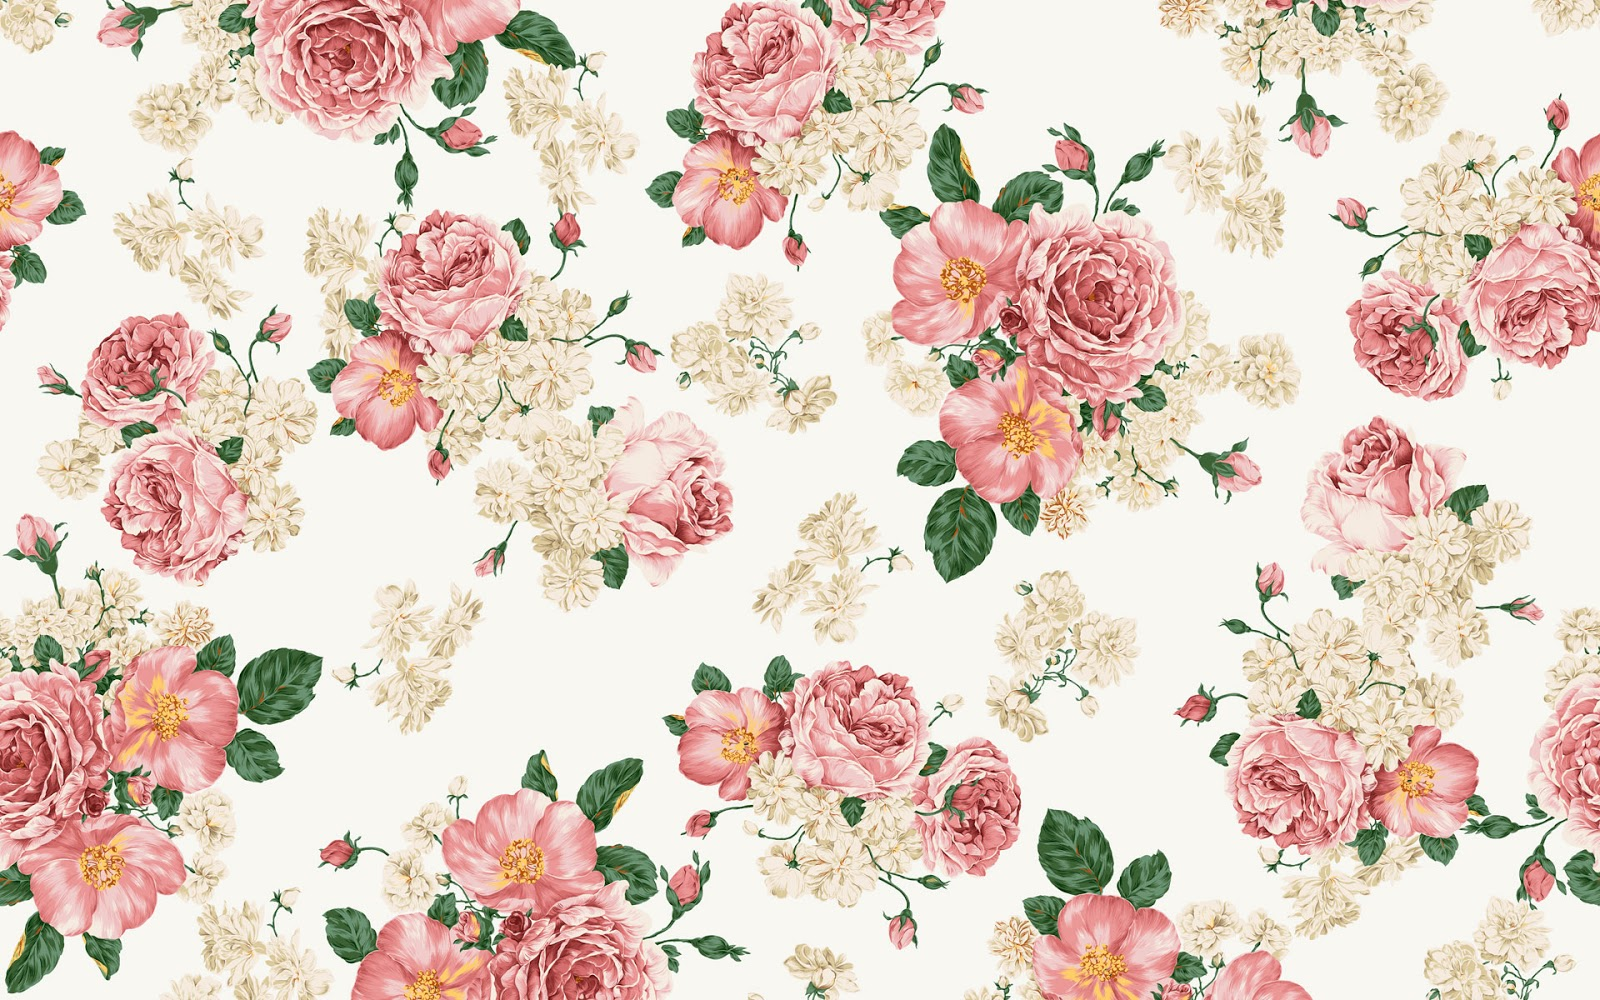 Floral Vintage Backgrounds 90